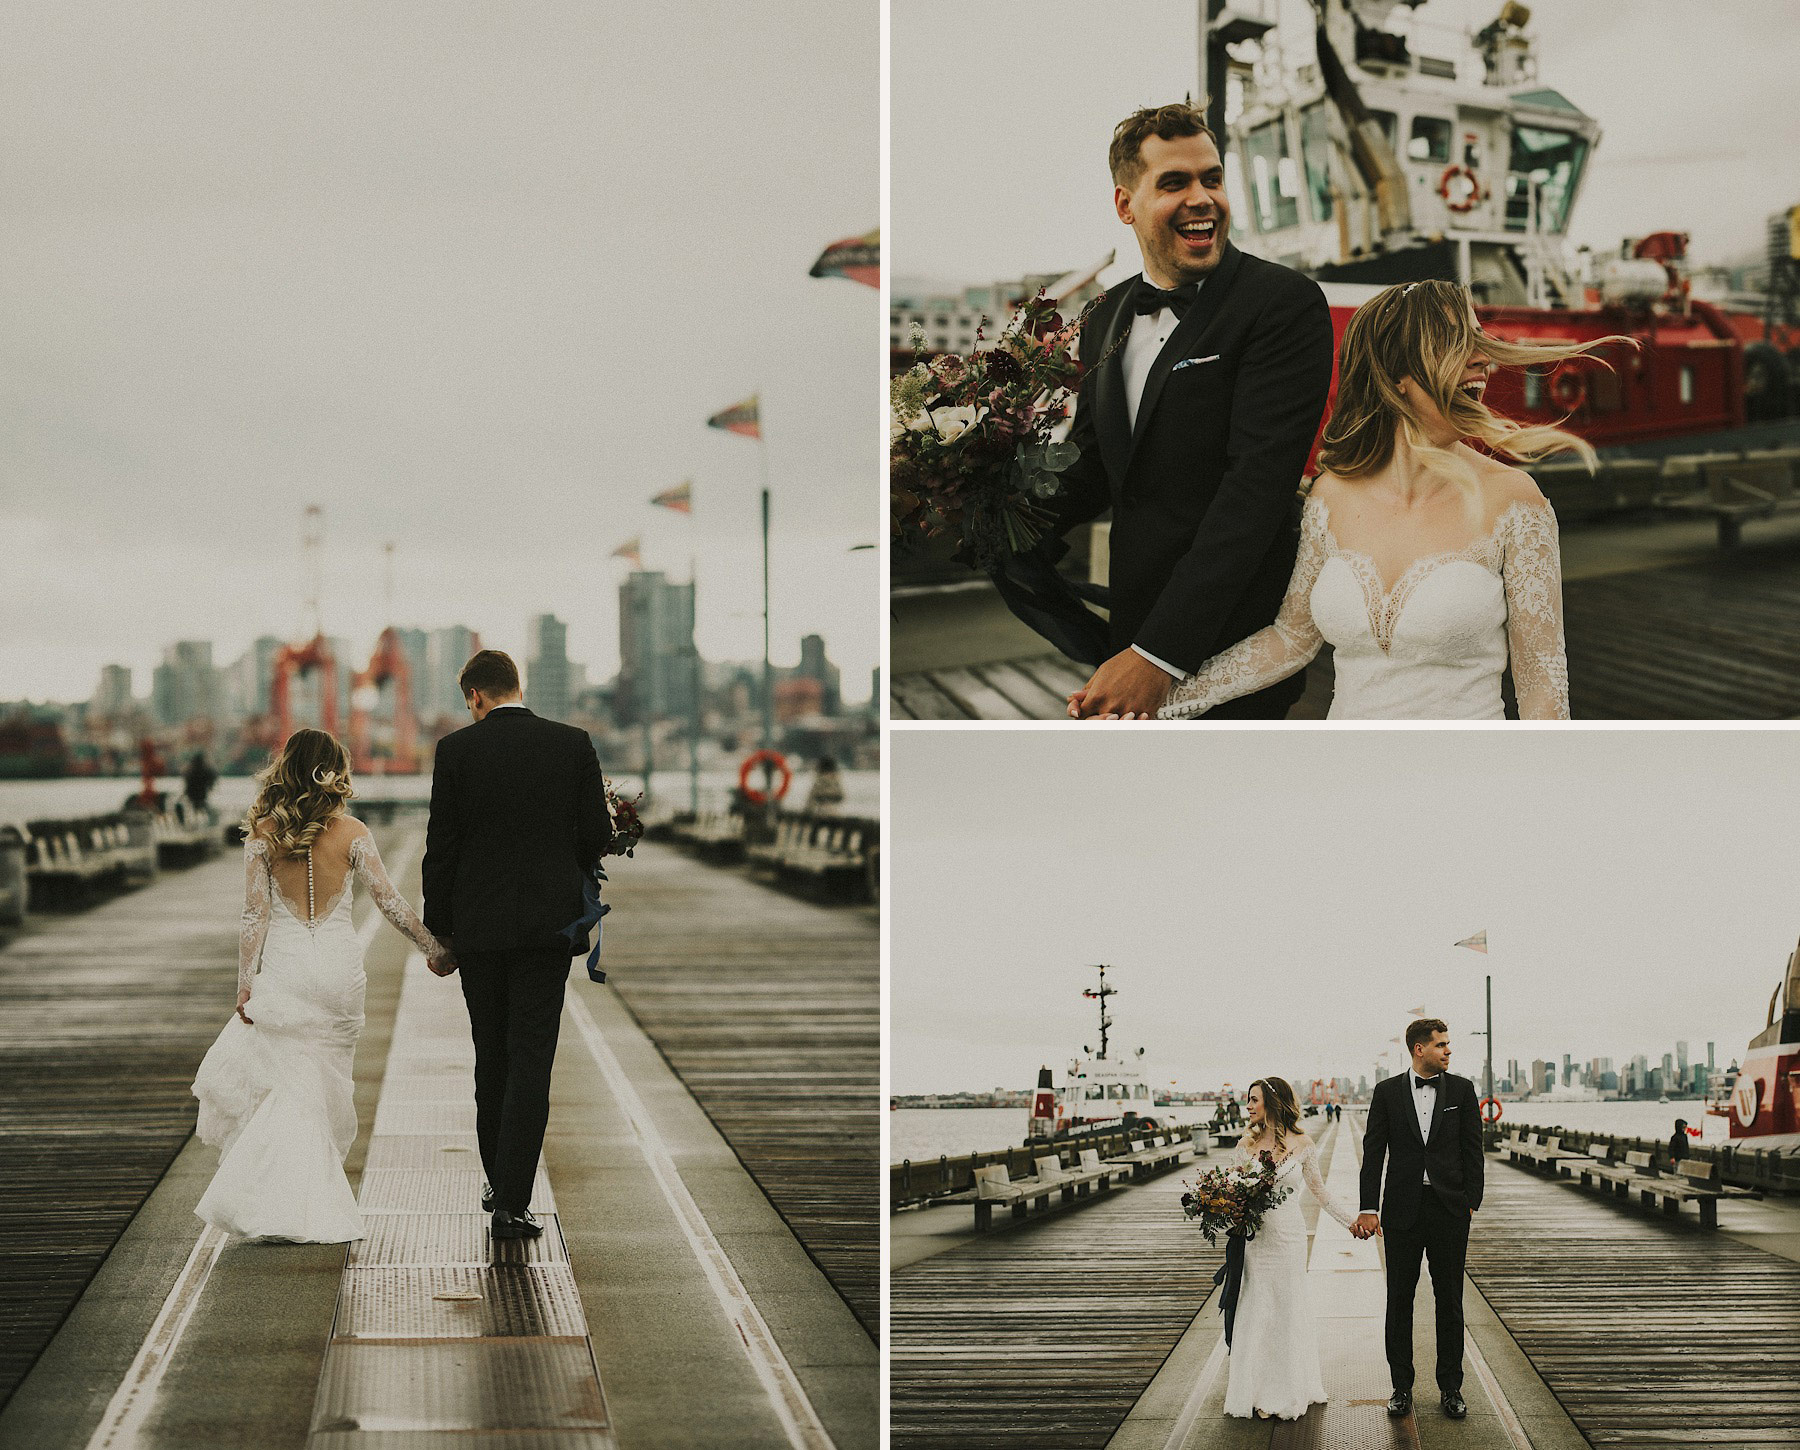 Couple on Pier The Apartment Photo Aston + Charlie - The Magical Cover Shot Vancouver Wedding